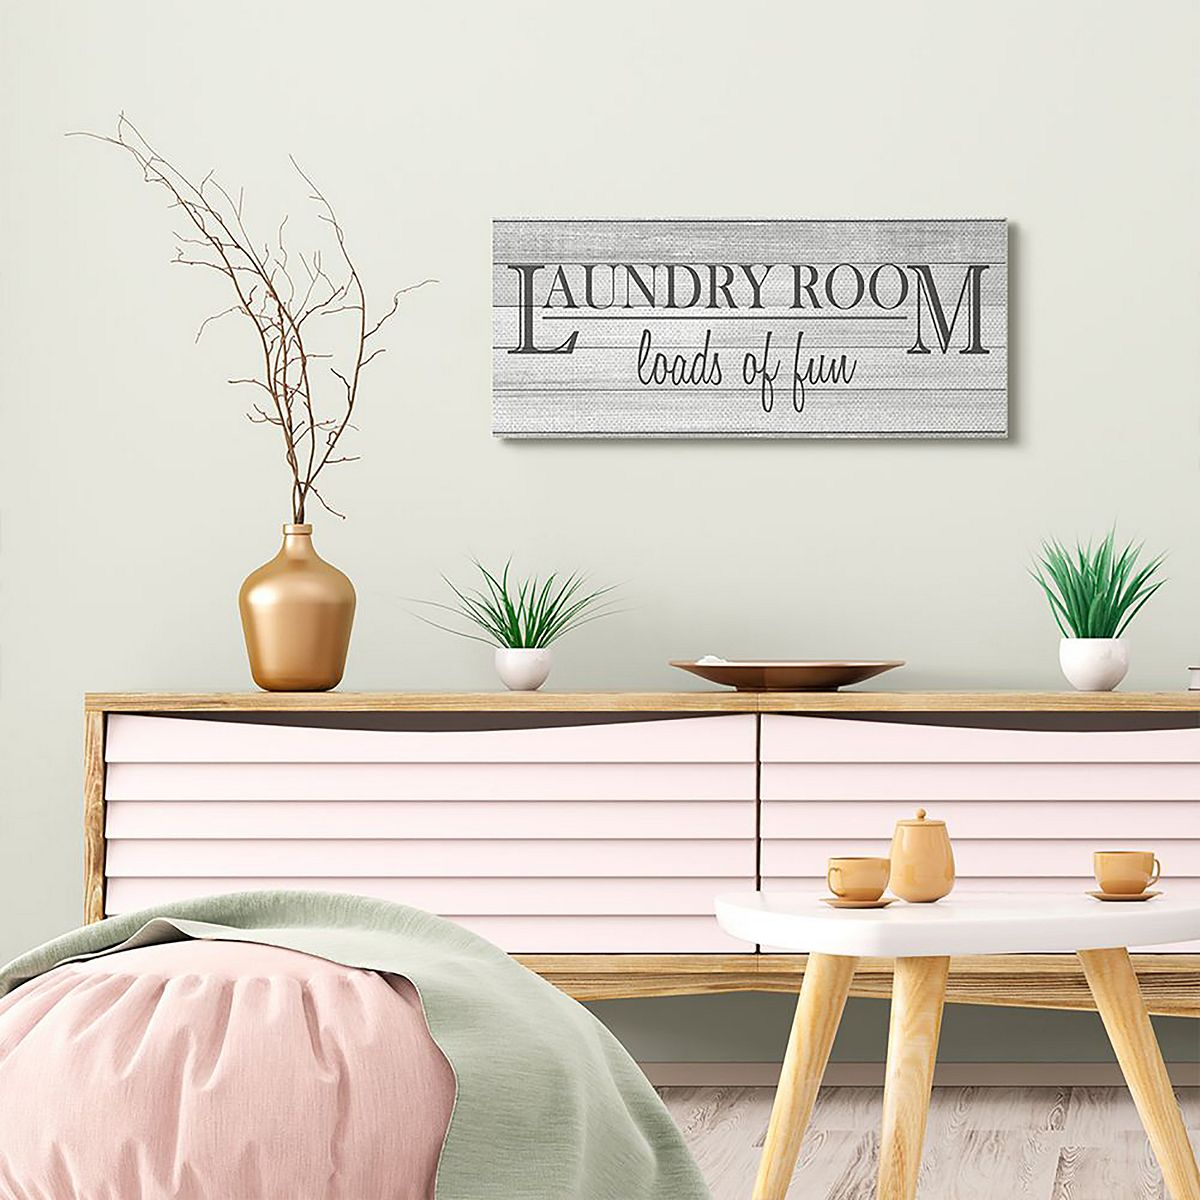 Stupell Home Decor Fun Laundry Room Funny Word Bathroom Black And White Design Wall Art by Kimberly Allen aT4F7